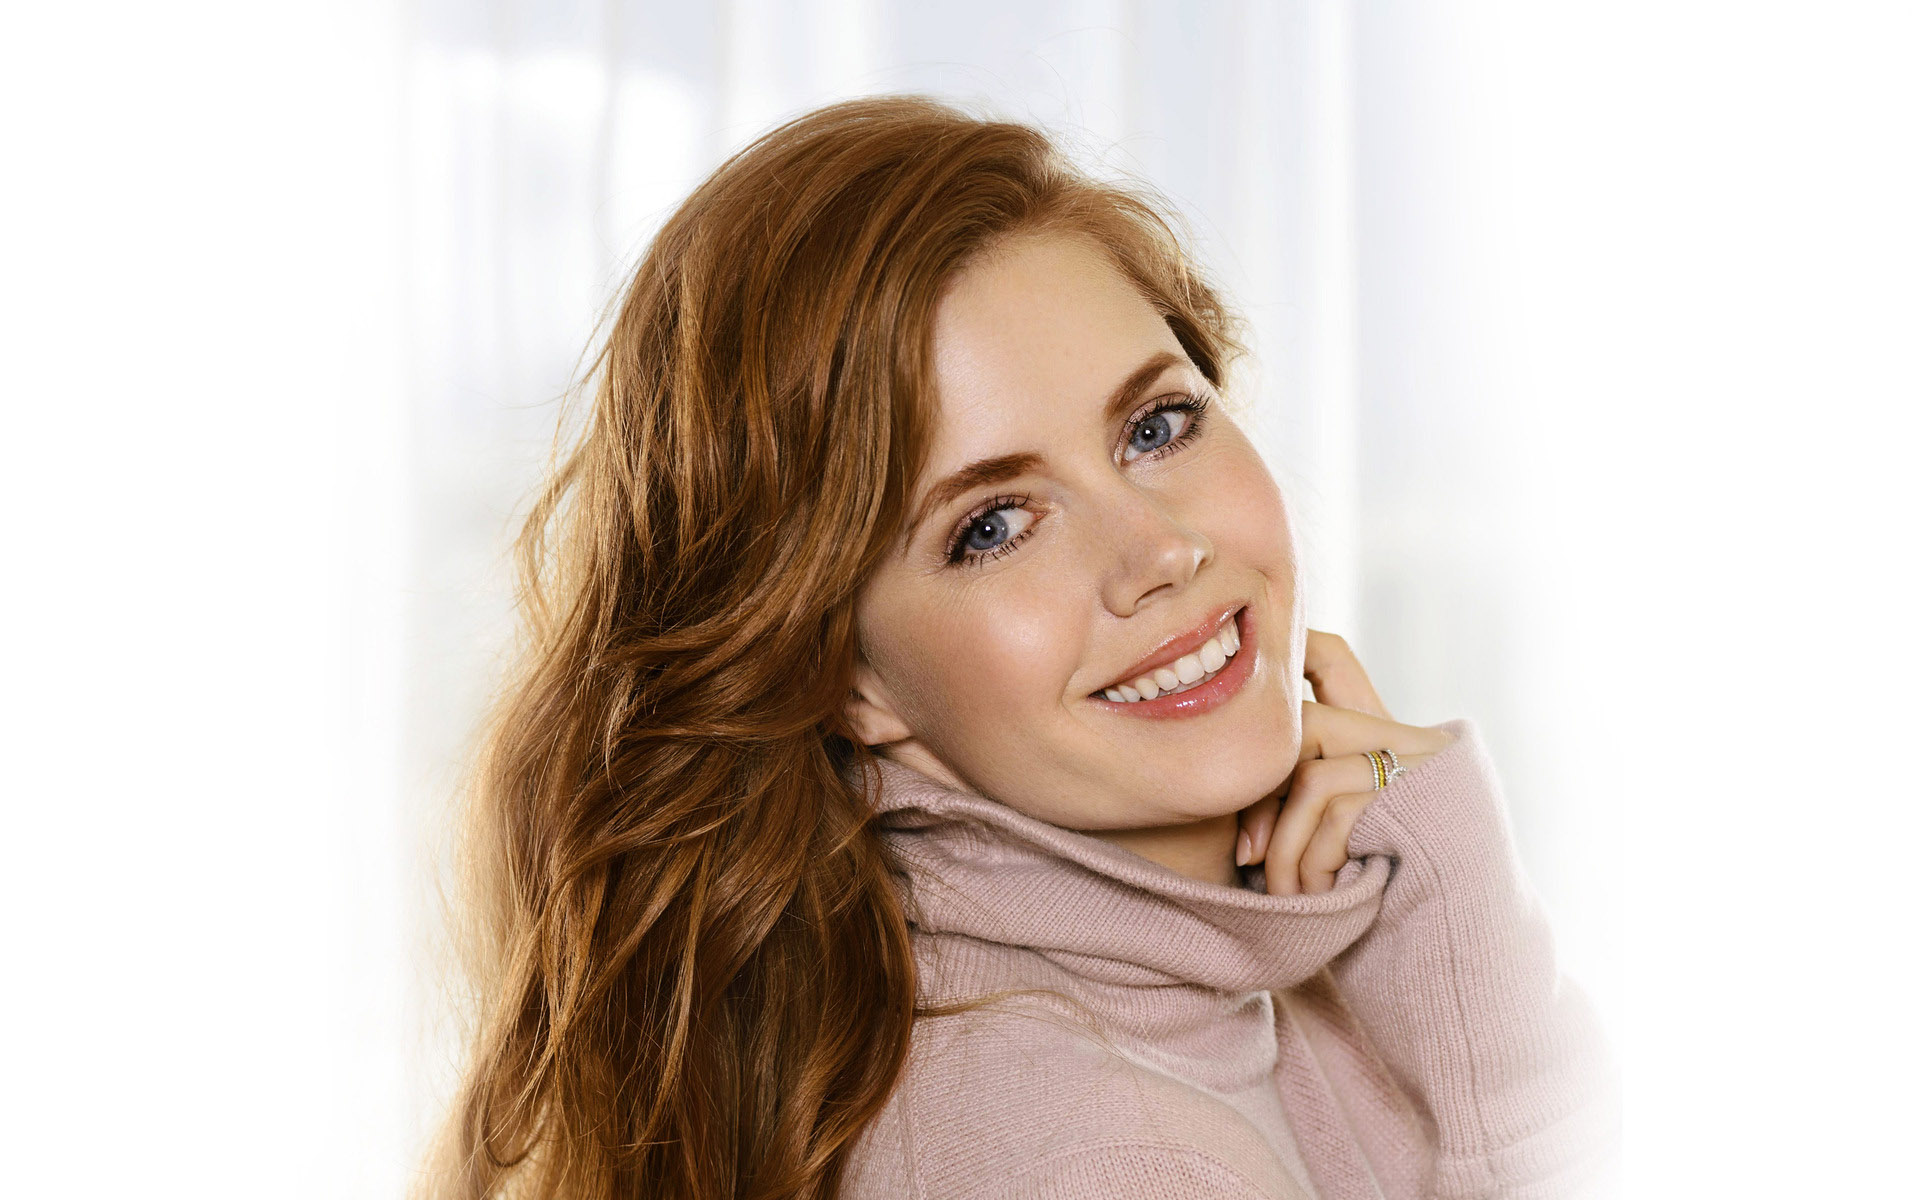 lovely amy adams cute smiling side look face still background hd mobile free images desktop